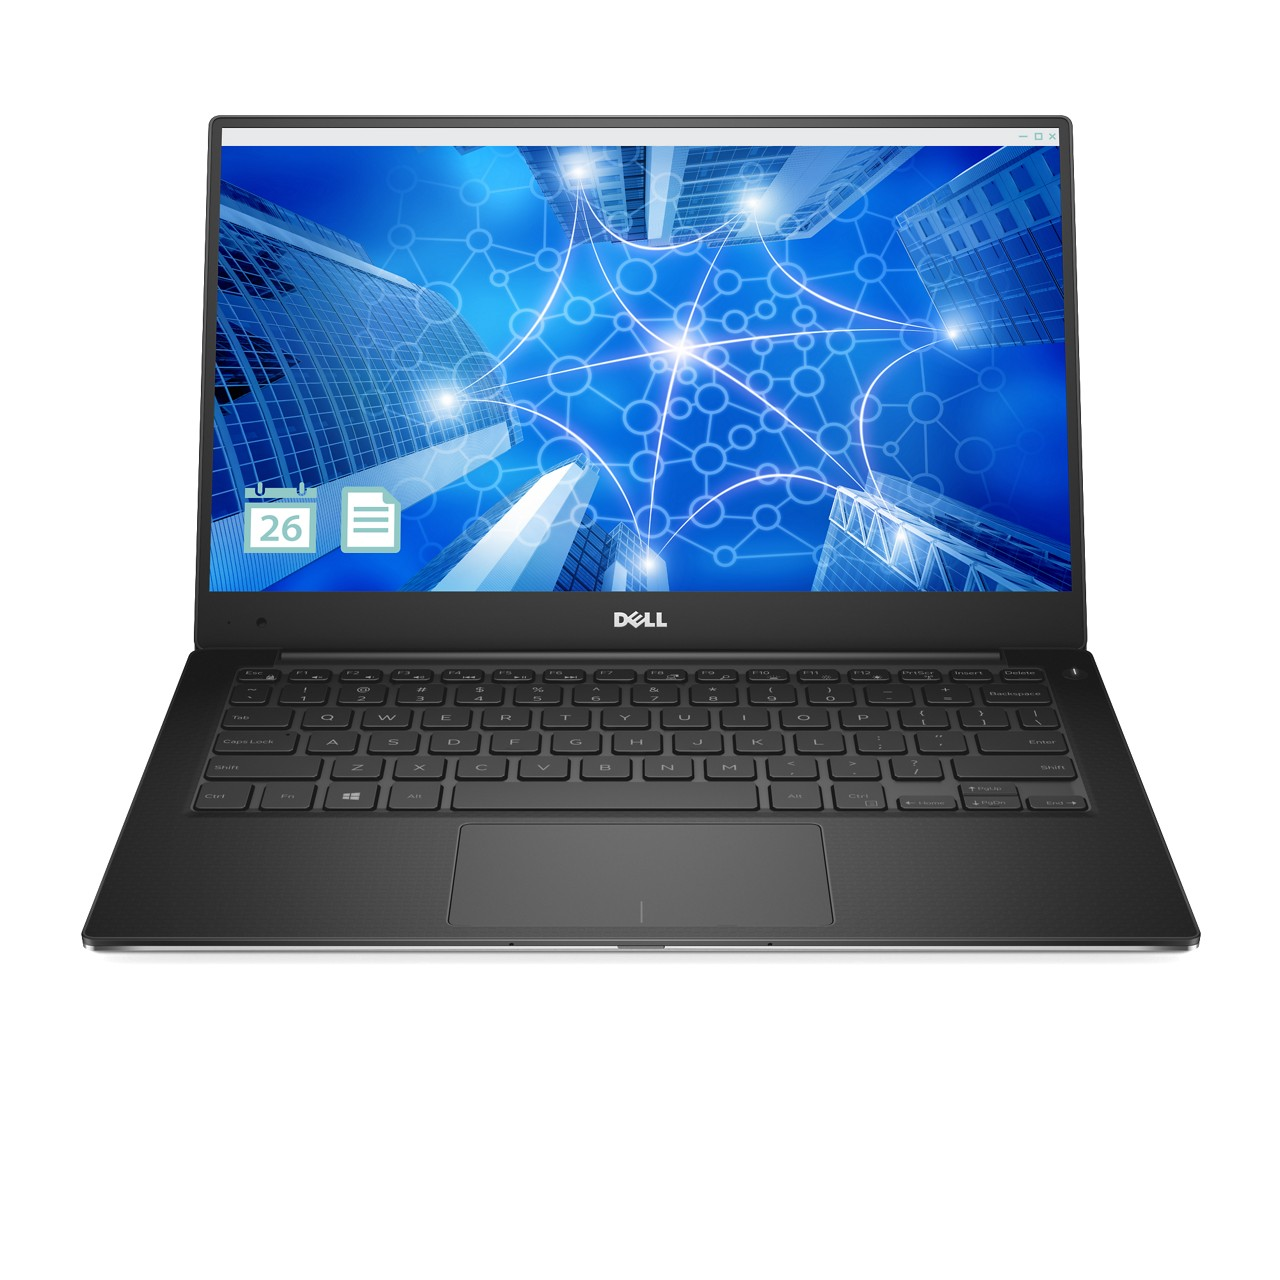 "Dell XPS 13 13.3"" FHD Laptop (4-Core i7 / 8GB / 256GB SSD)"